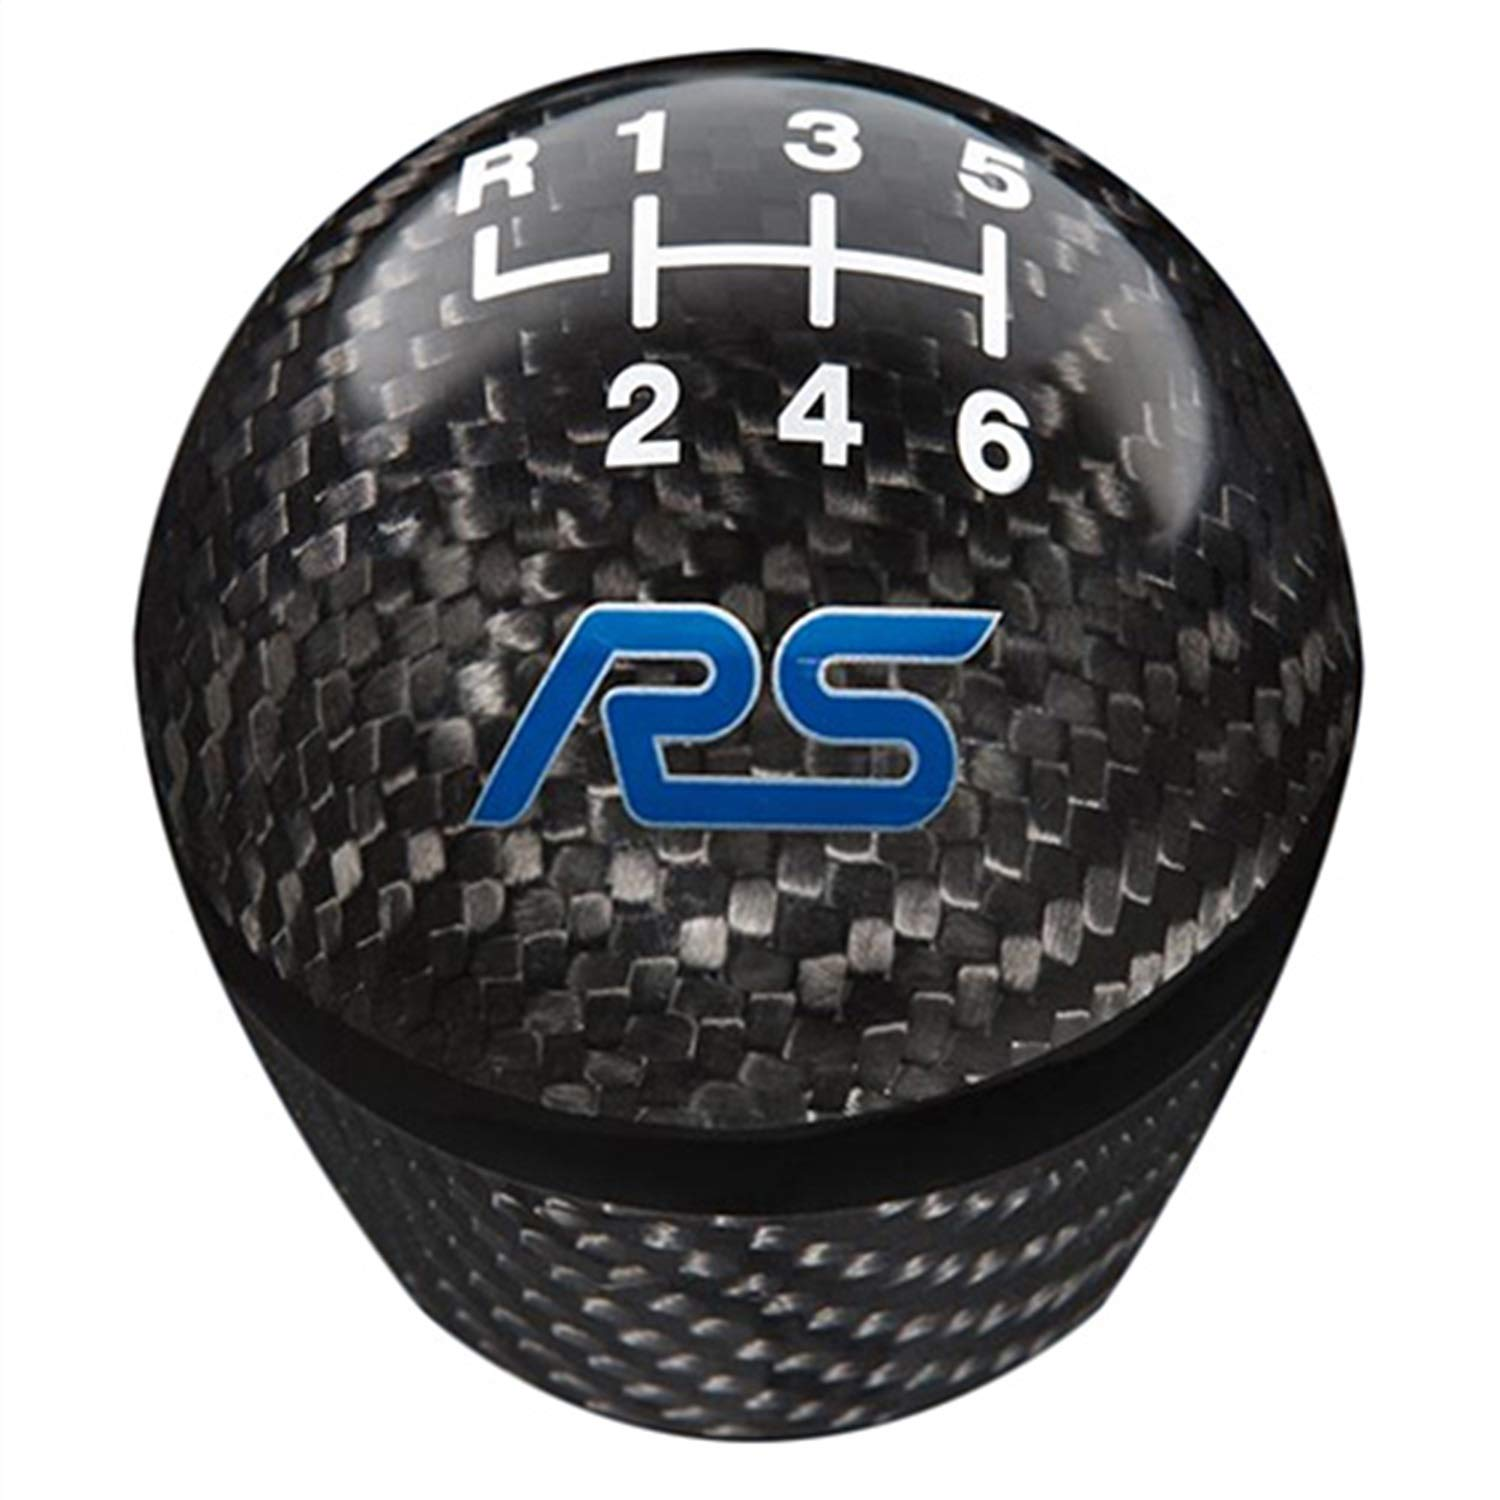 FOCUS RS SHIFT KNOB-CARBON FIBER, 6 SPEED by FORD PERFORMANCE (Image #1)